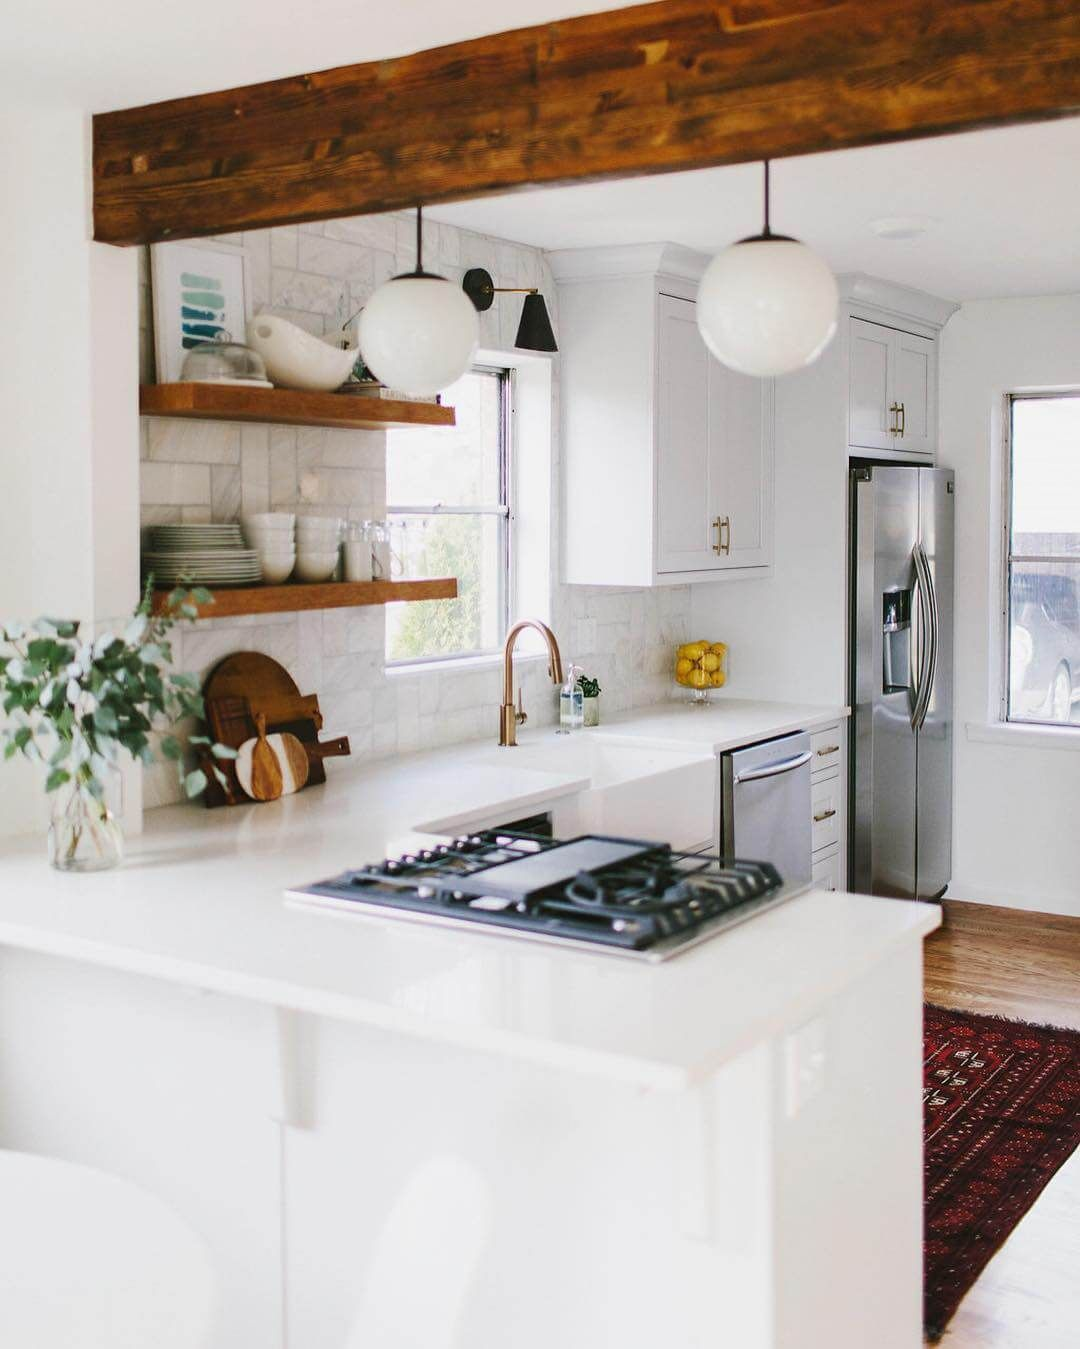 23 Delightful Cottage Kitchen Design And Decorating Ideas That Will Add Charm To Your Home Kitchen Remodel Small Kitchen Design Small Kitchen Inspirations